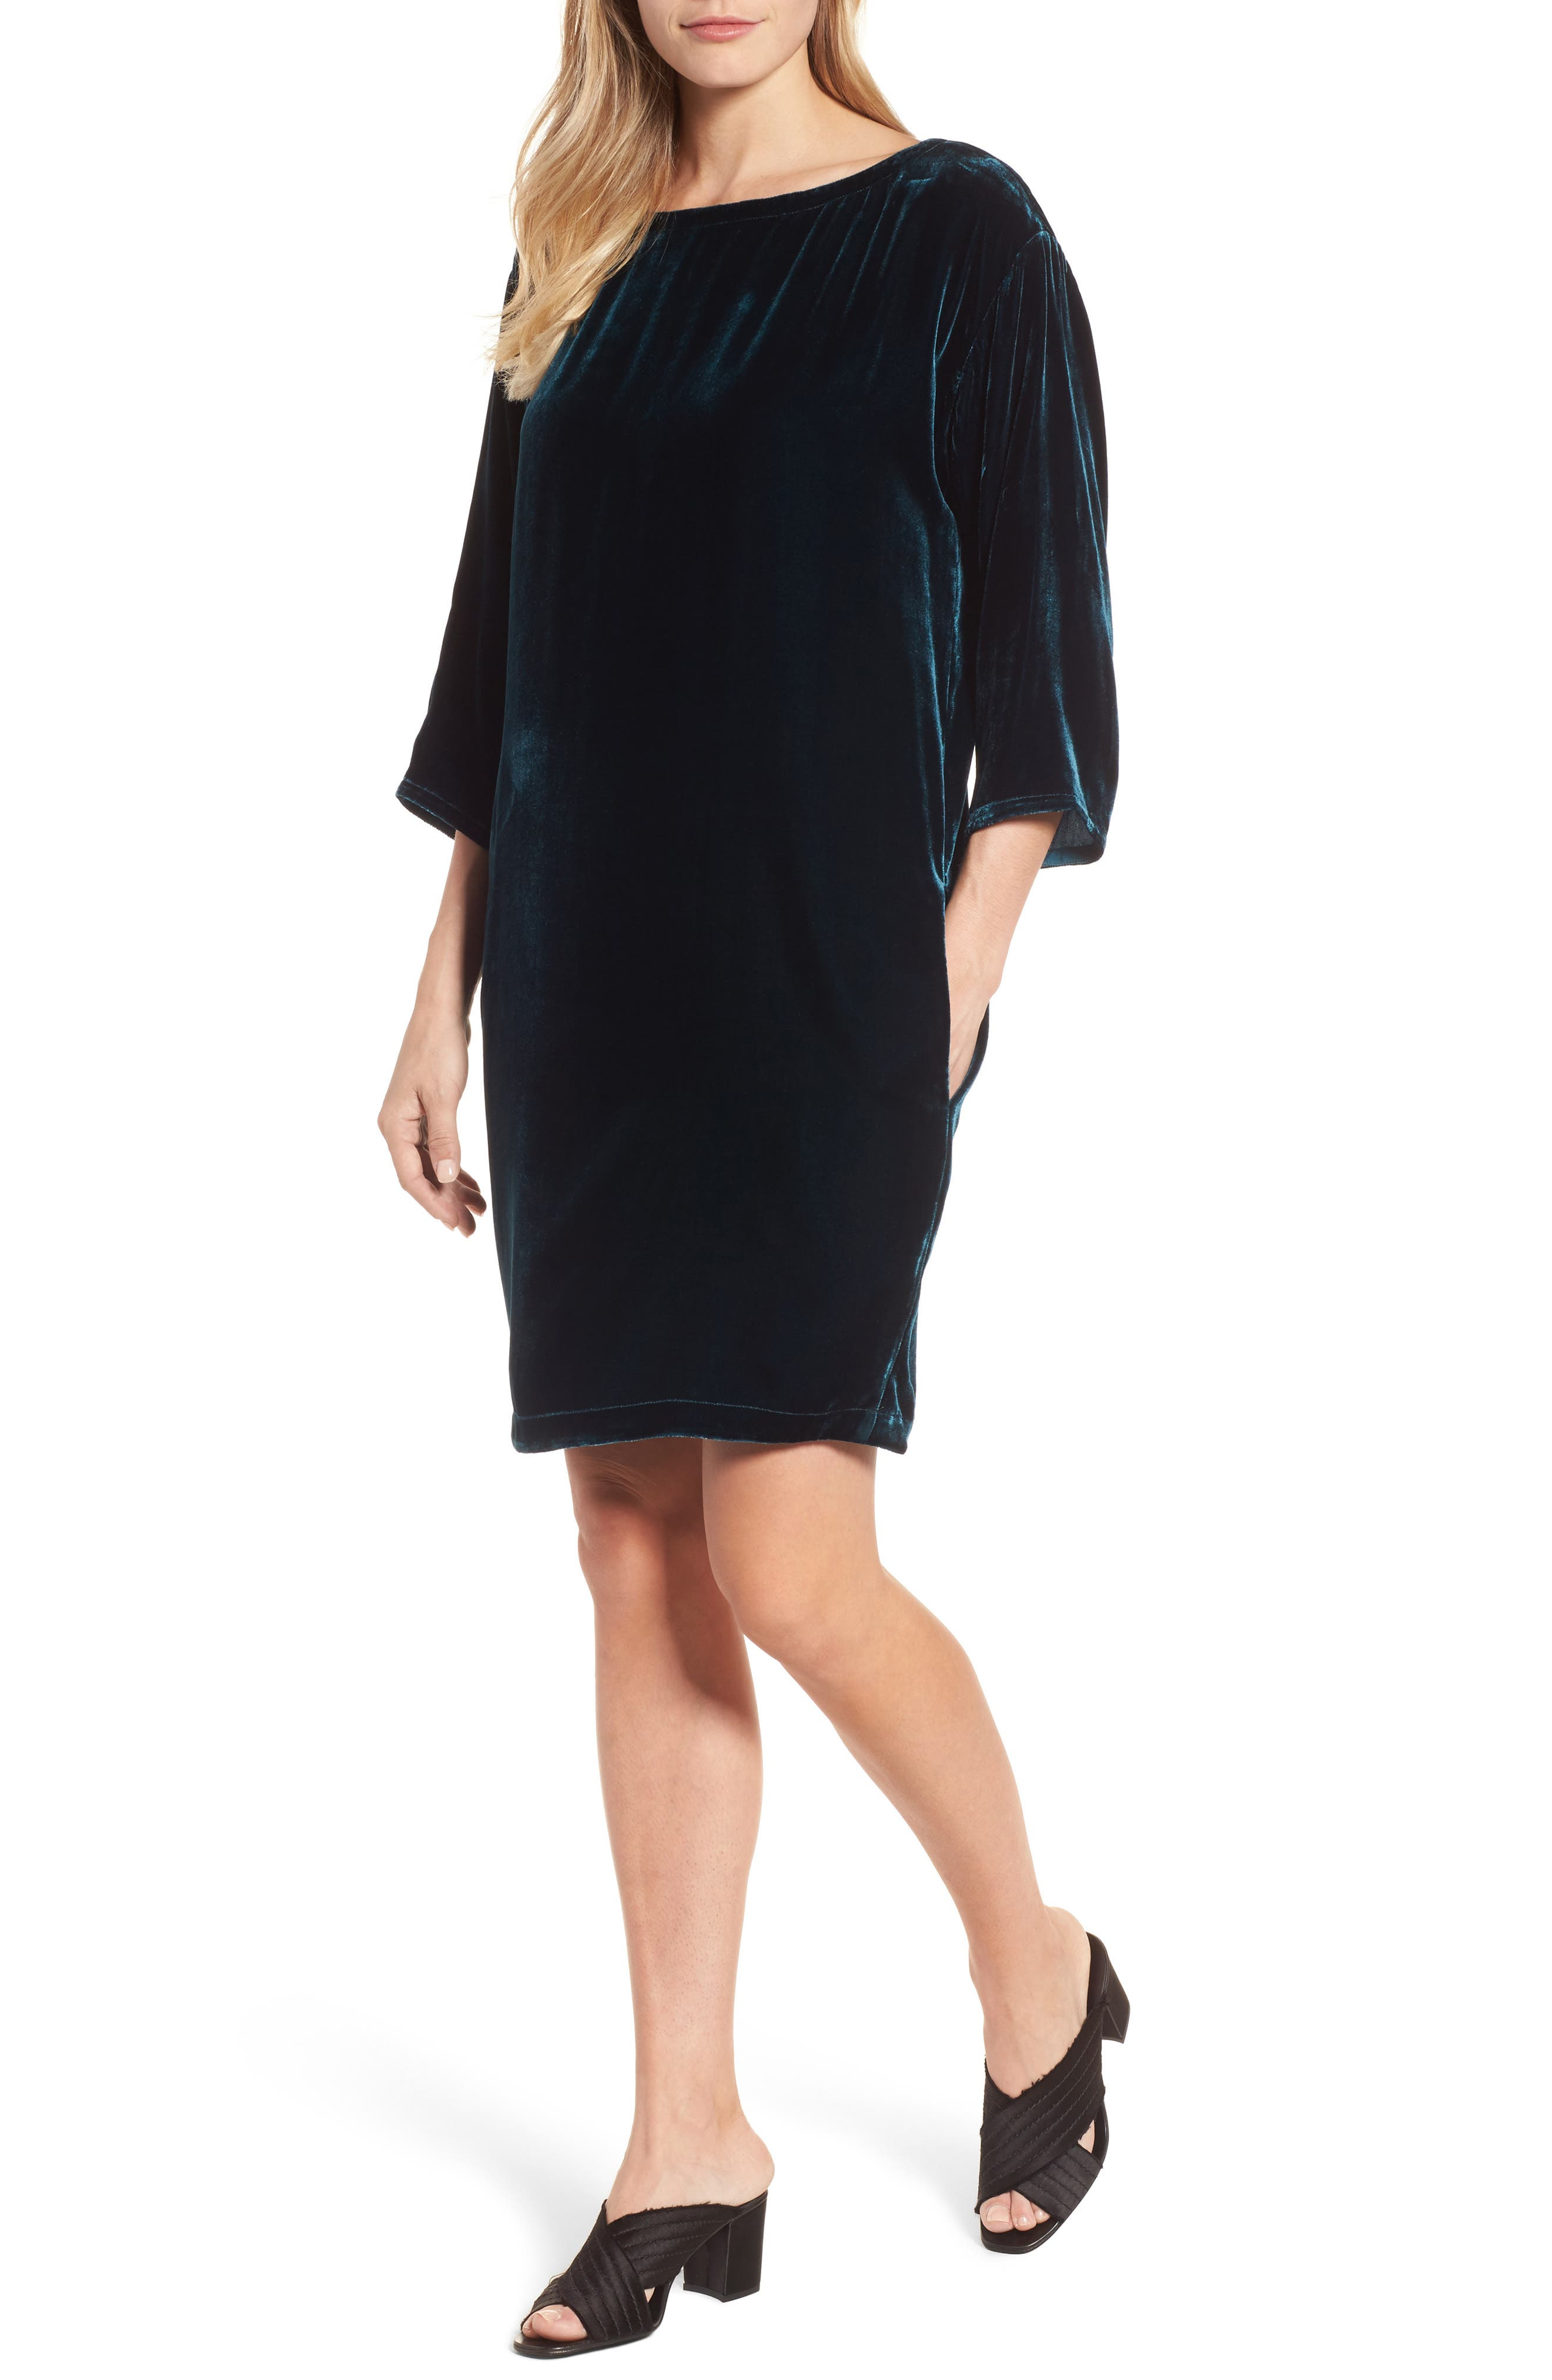 Skies are blue velour lace dress